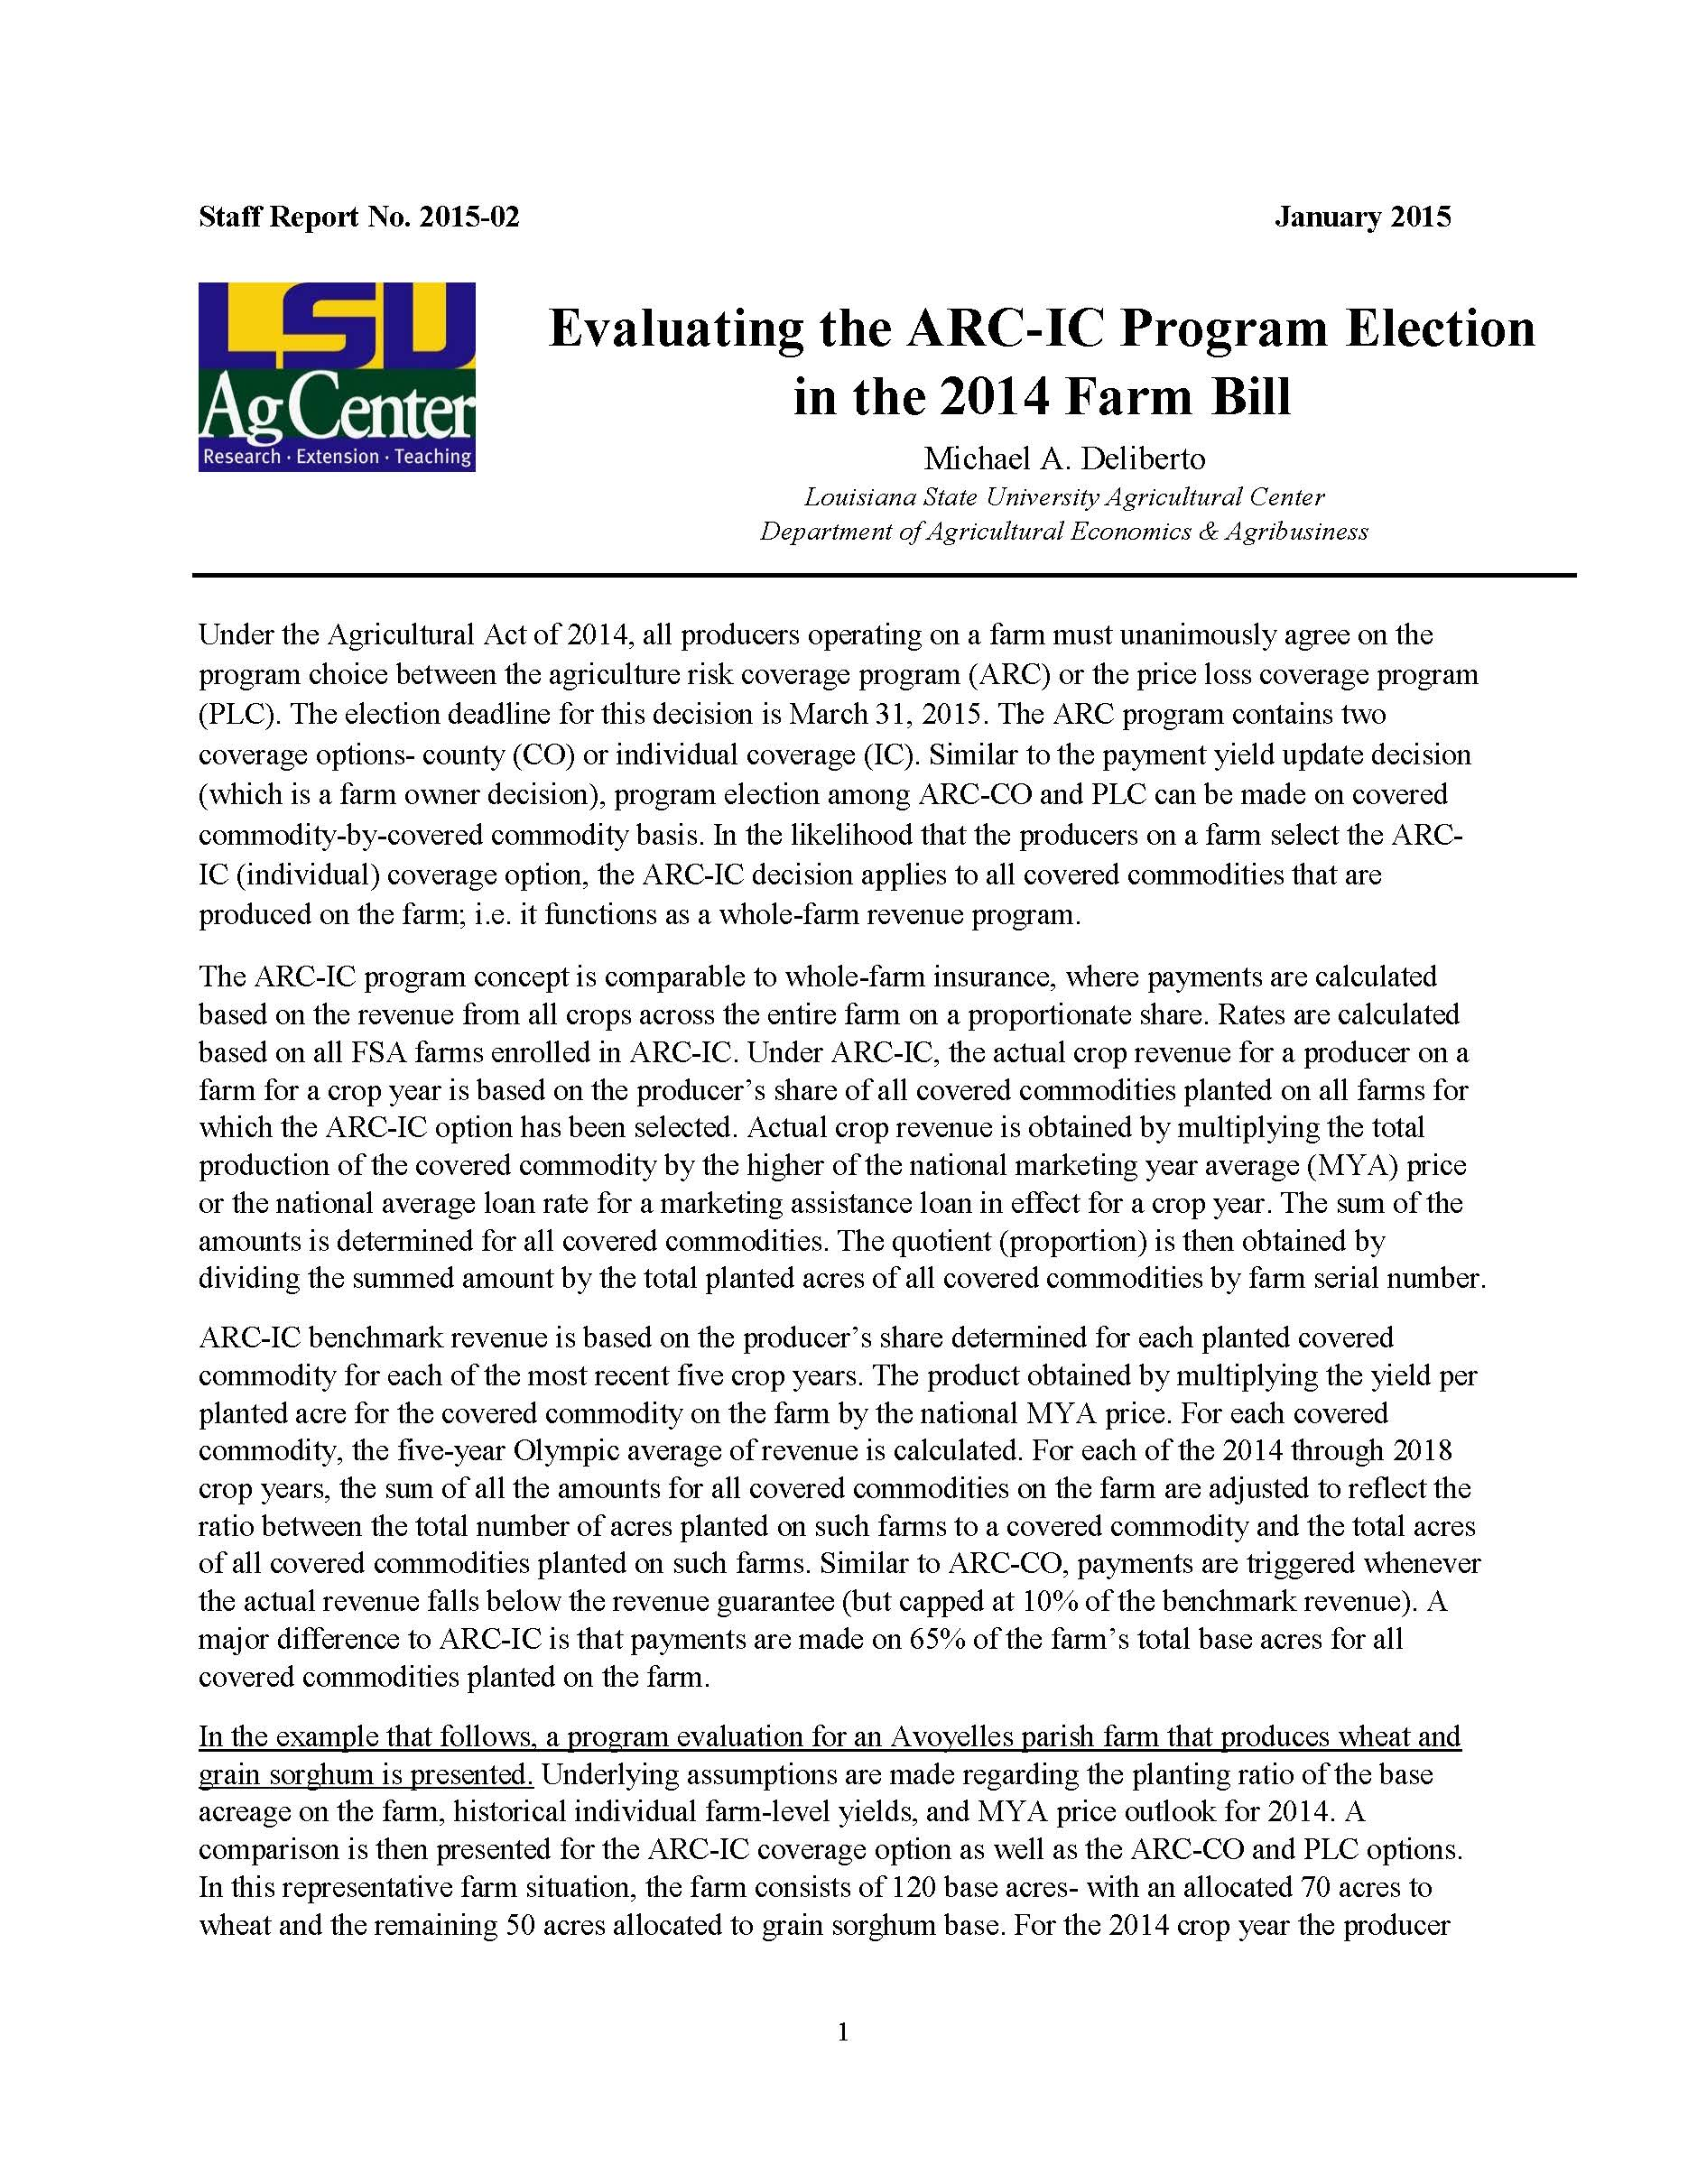 Evaluating the ARC-IC Program Election in the 2014 Farm Bill